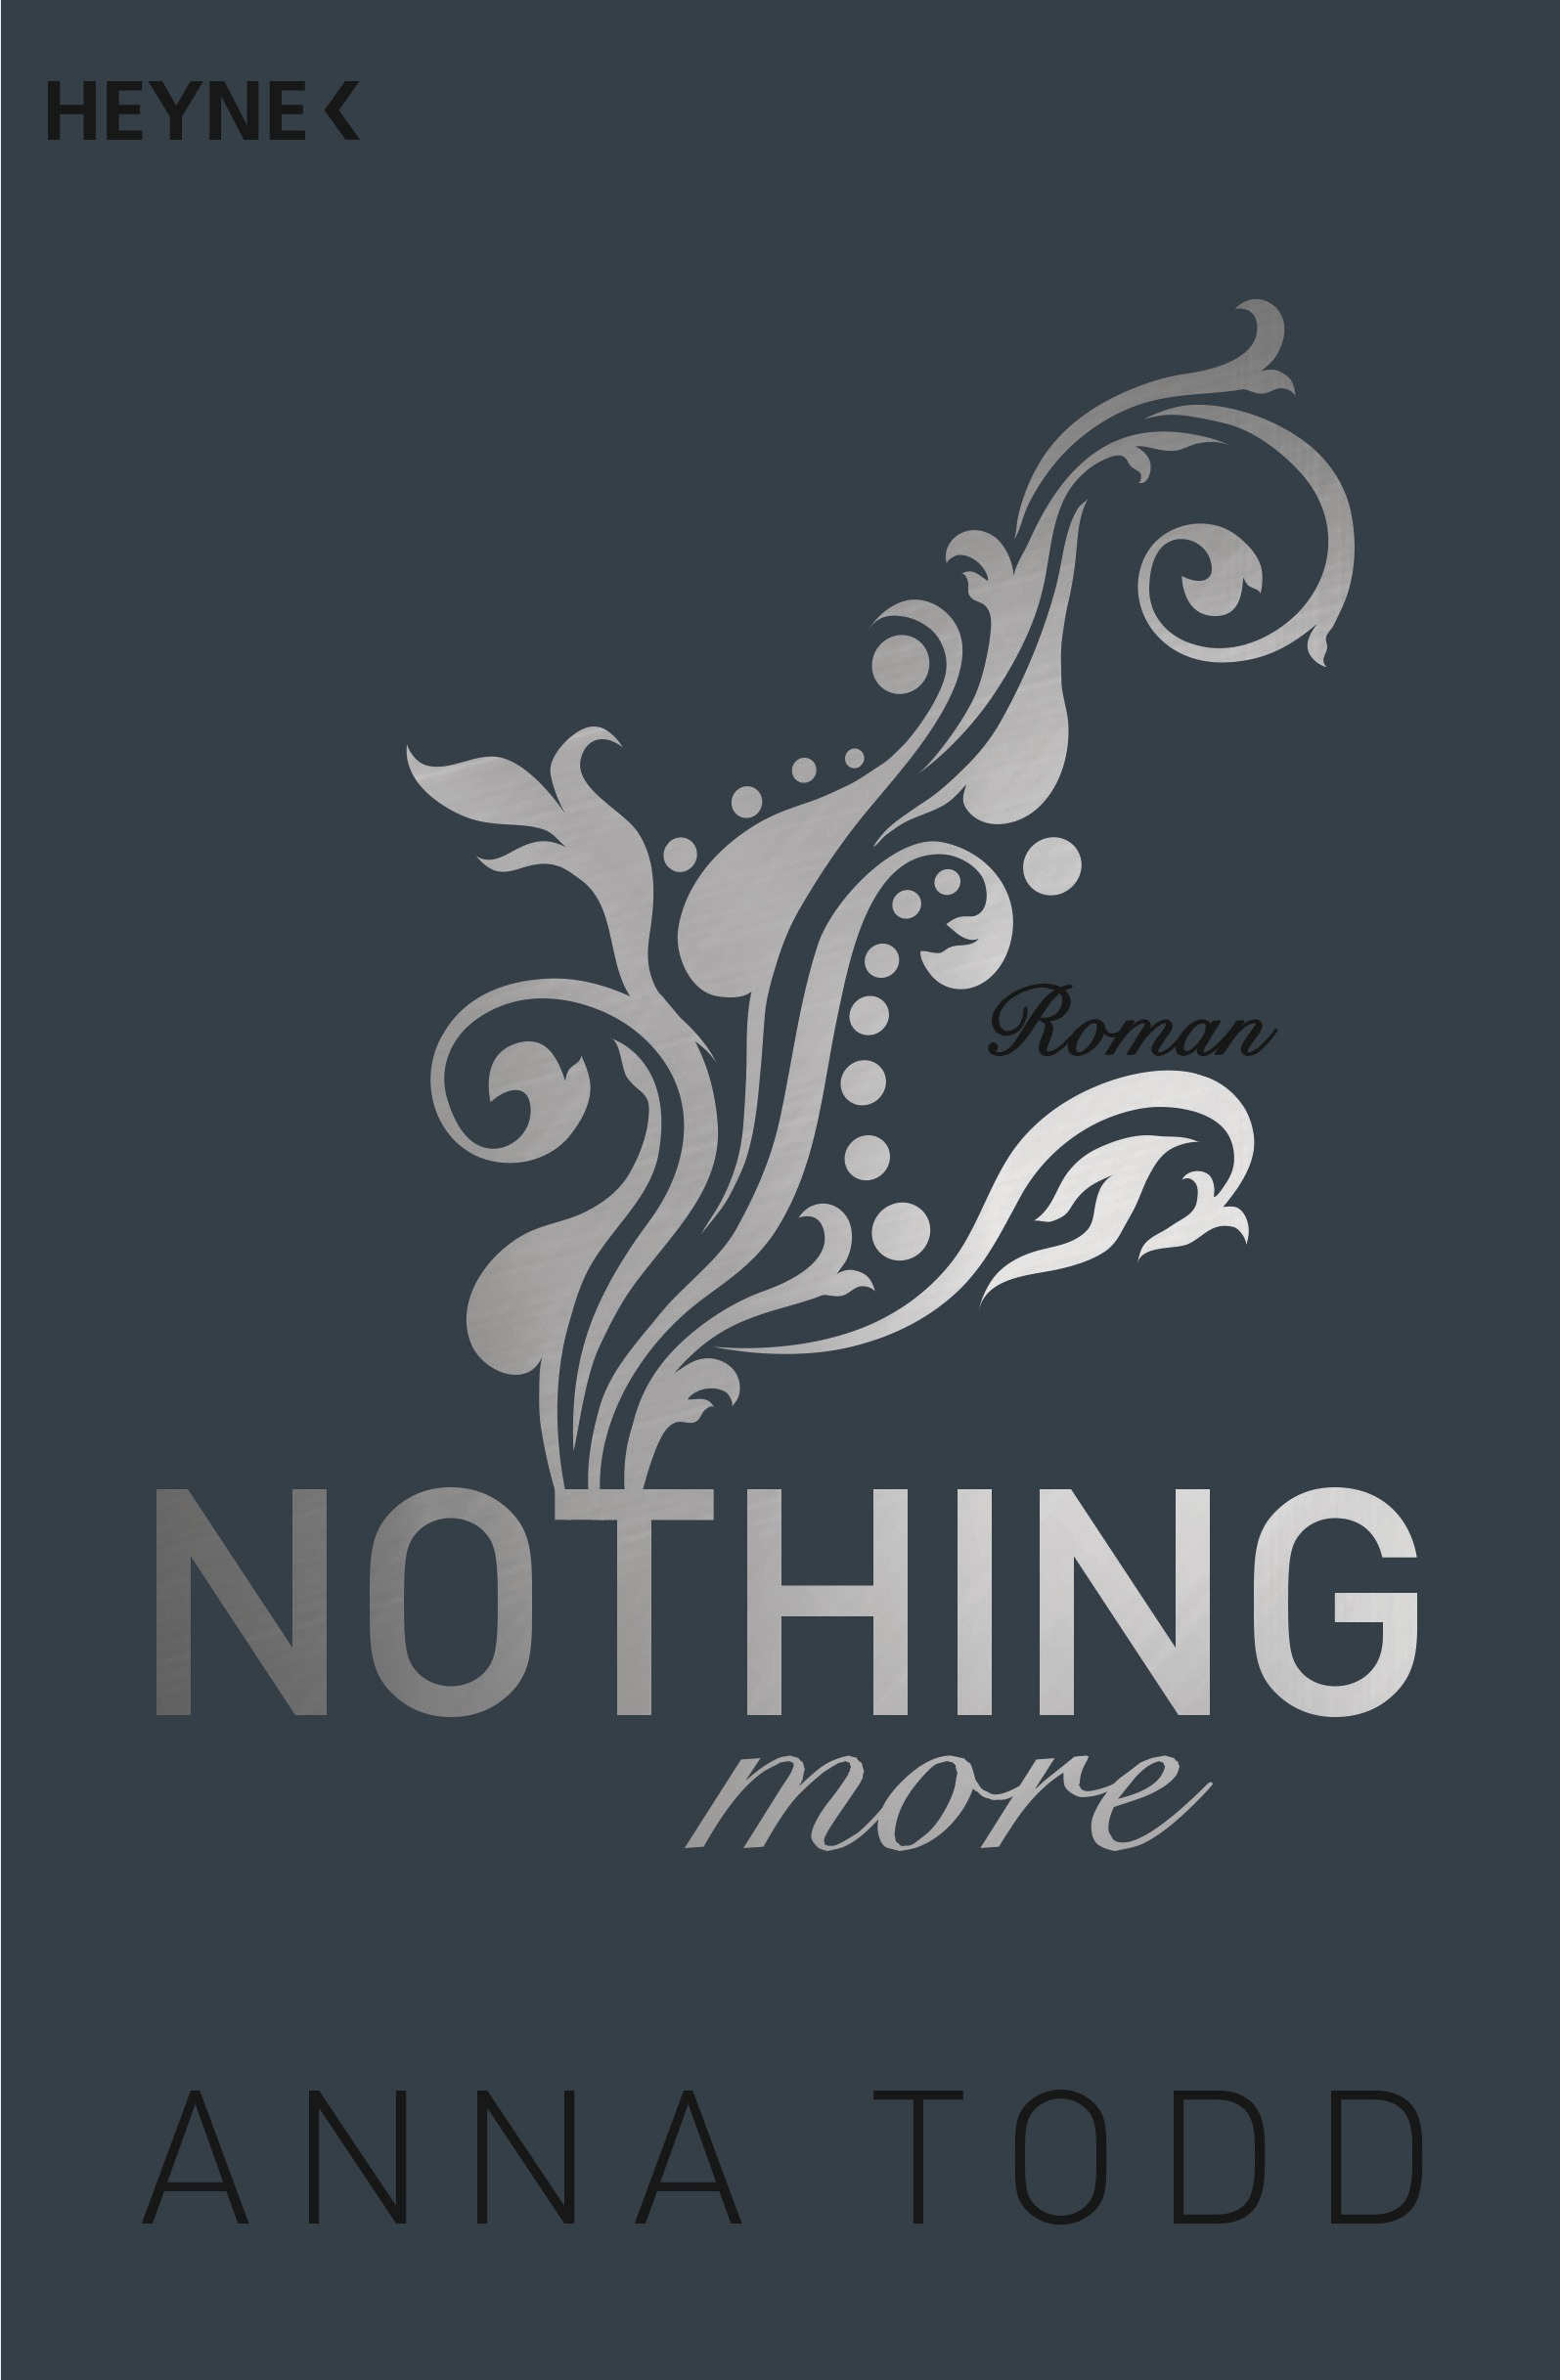 Nothing more 6